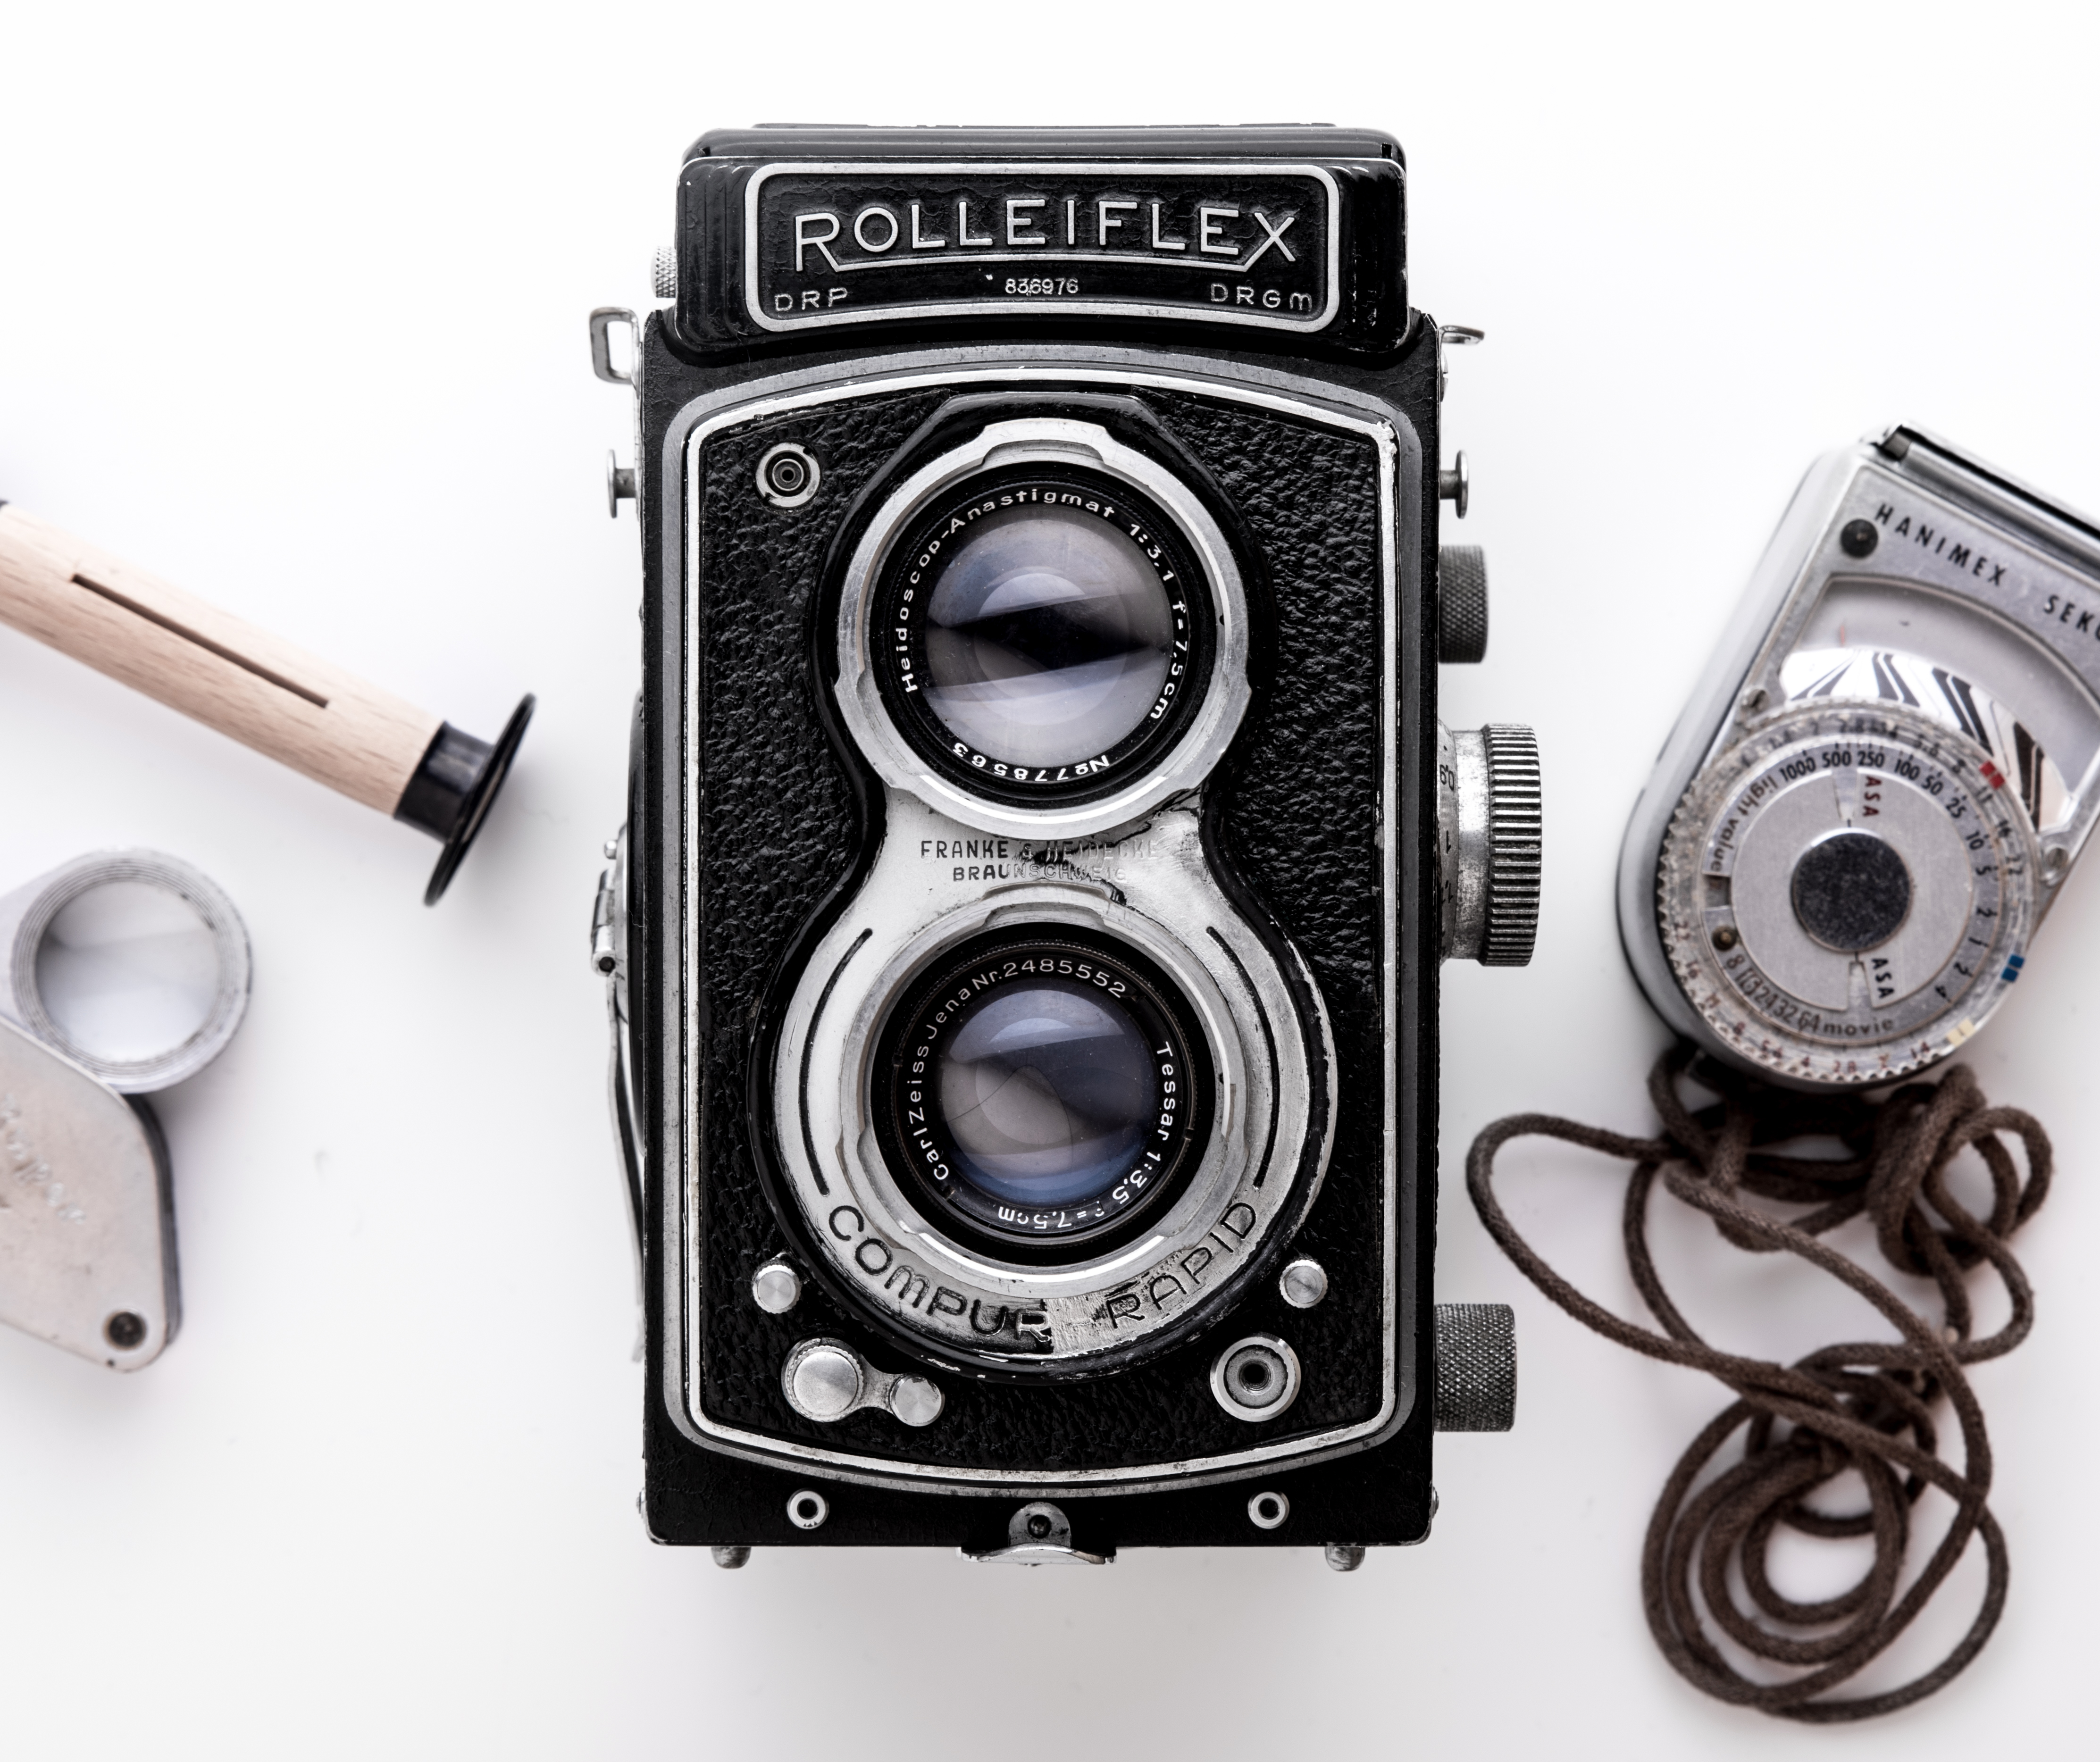 Black Rolleiflex Camera on White Surface